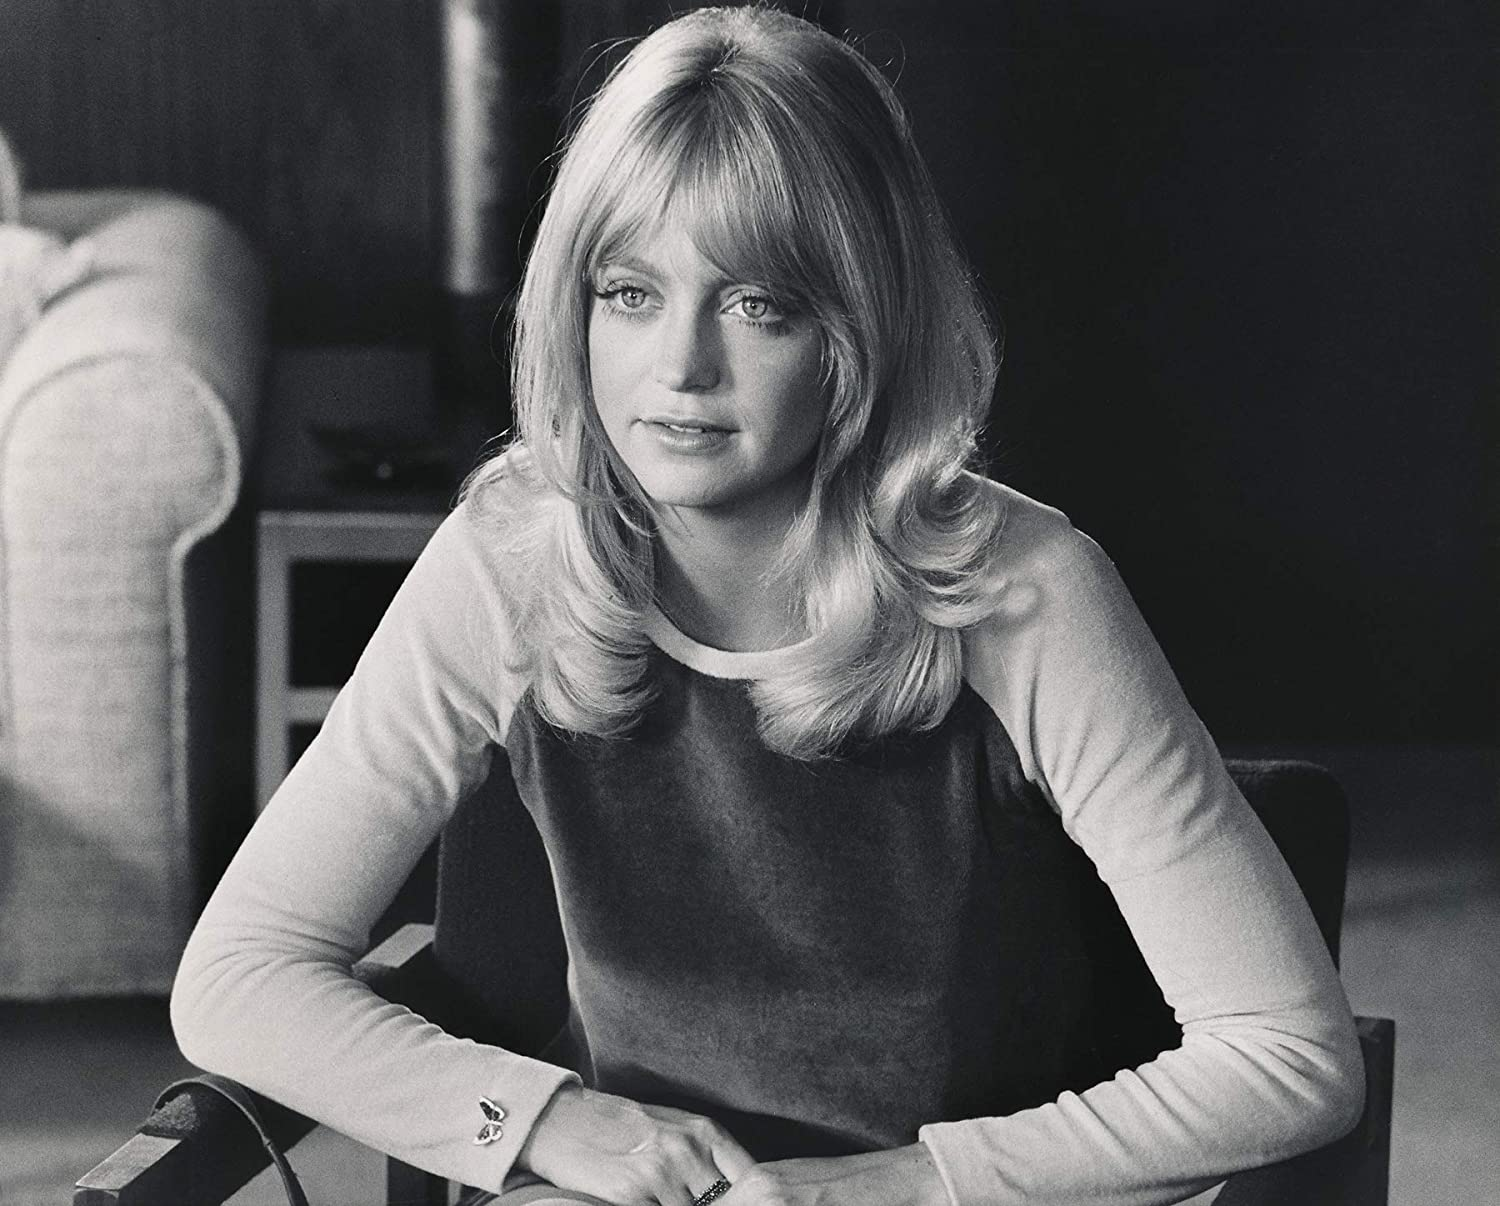 Amazon Com Celebrity Vault Candid And Young Goldie Hawn An Archival Print 24 X 20 Posters Prints